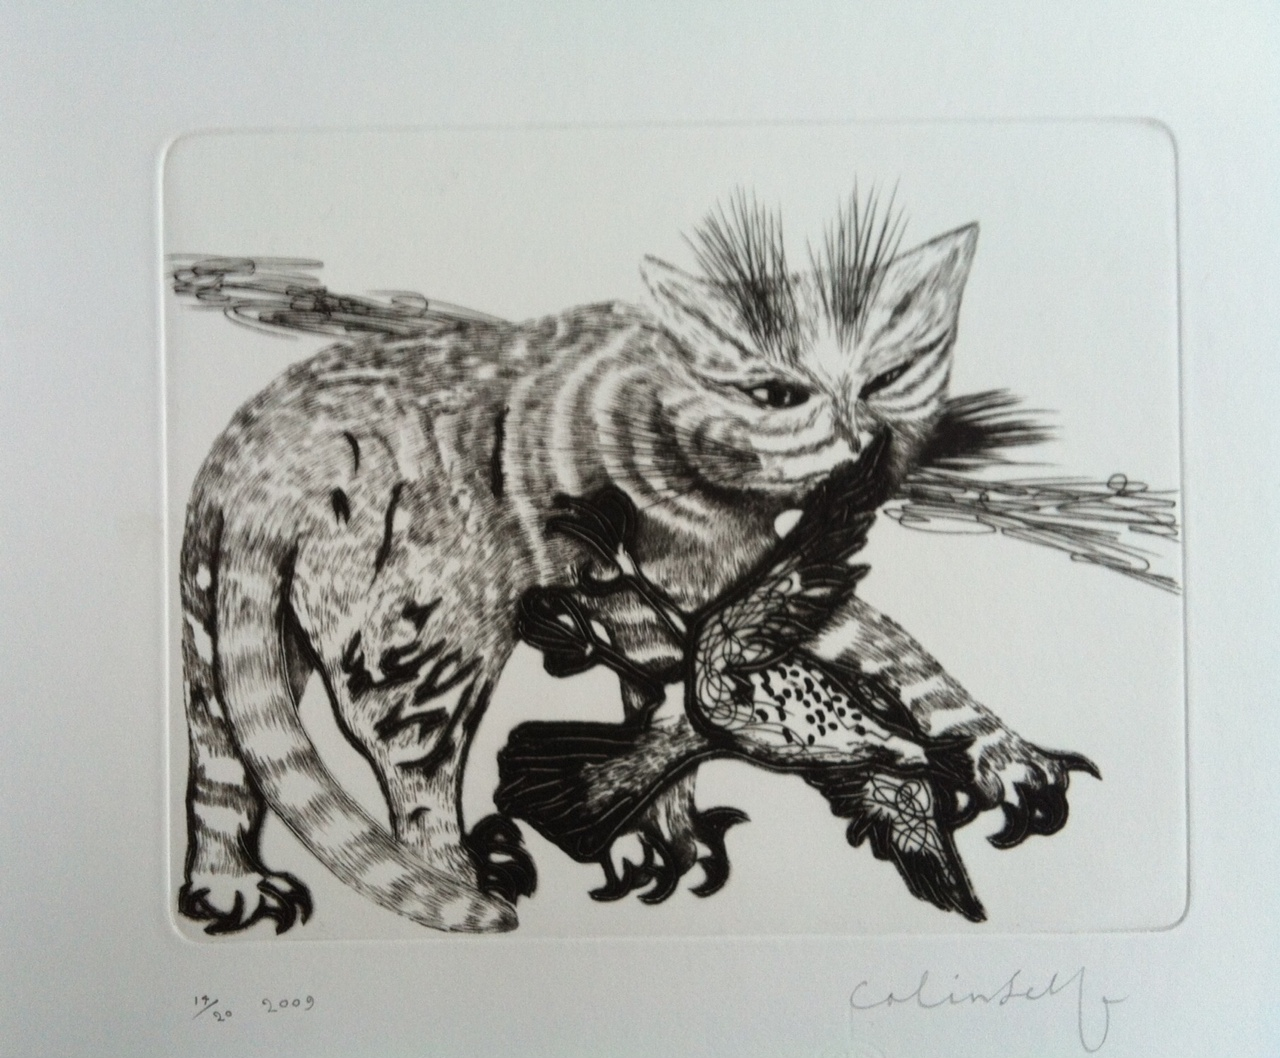 Colin Self - Cat with Red Claws